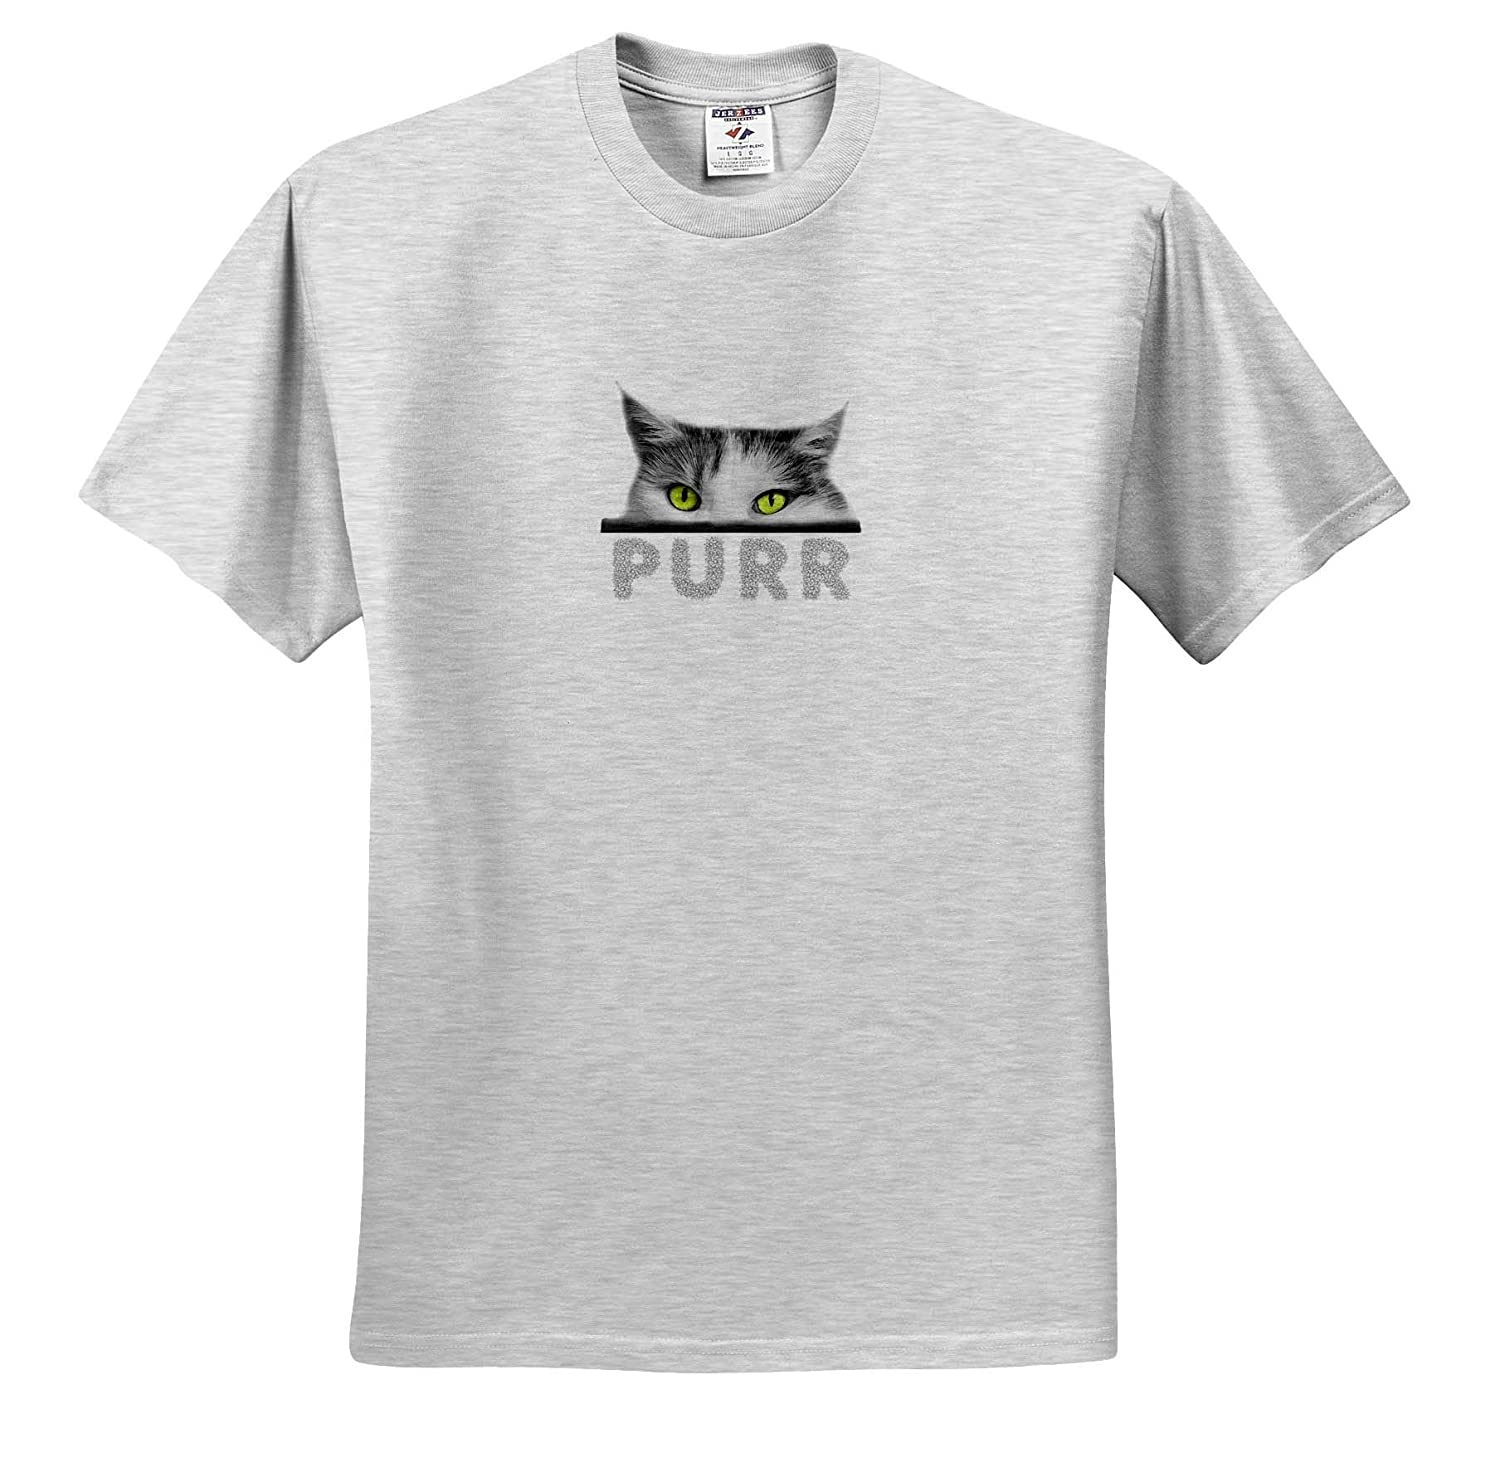 ts/_320854 Cat Eyes Purr Purr Adult T-Shirt XL Magnificent Green Eyed cat Funny Positive Gift 3dRose Alexis Design